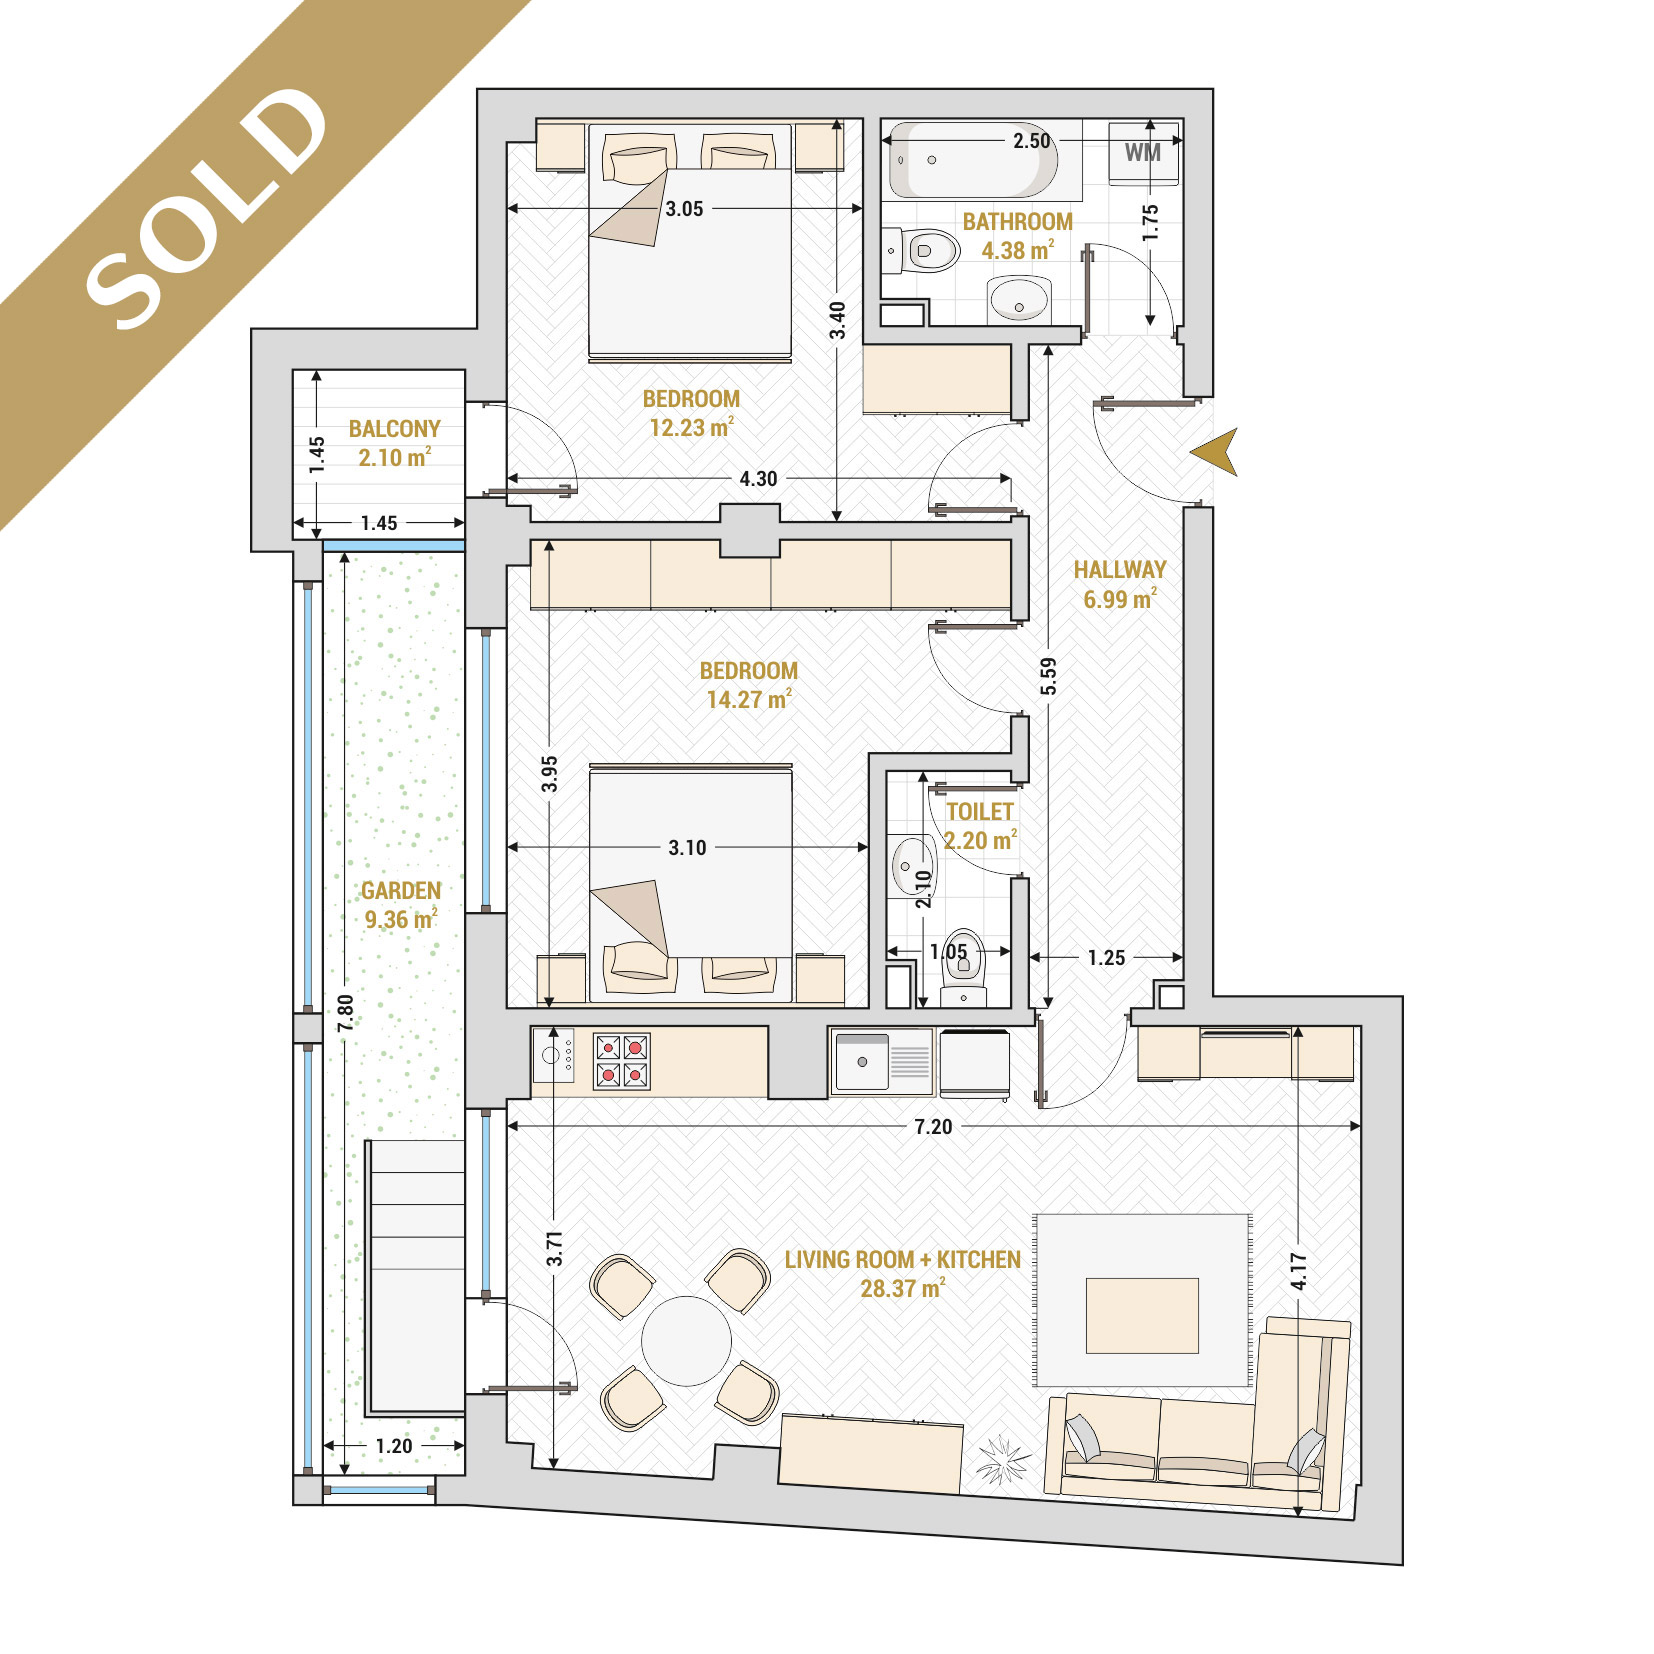 Catedral Residence - 3 Room Apartment for Sale - Bucharest - Romania - Type 3 – S2A - SOLD